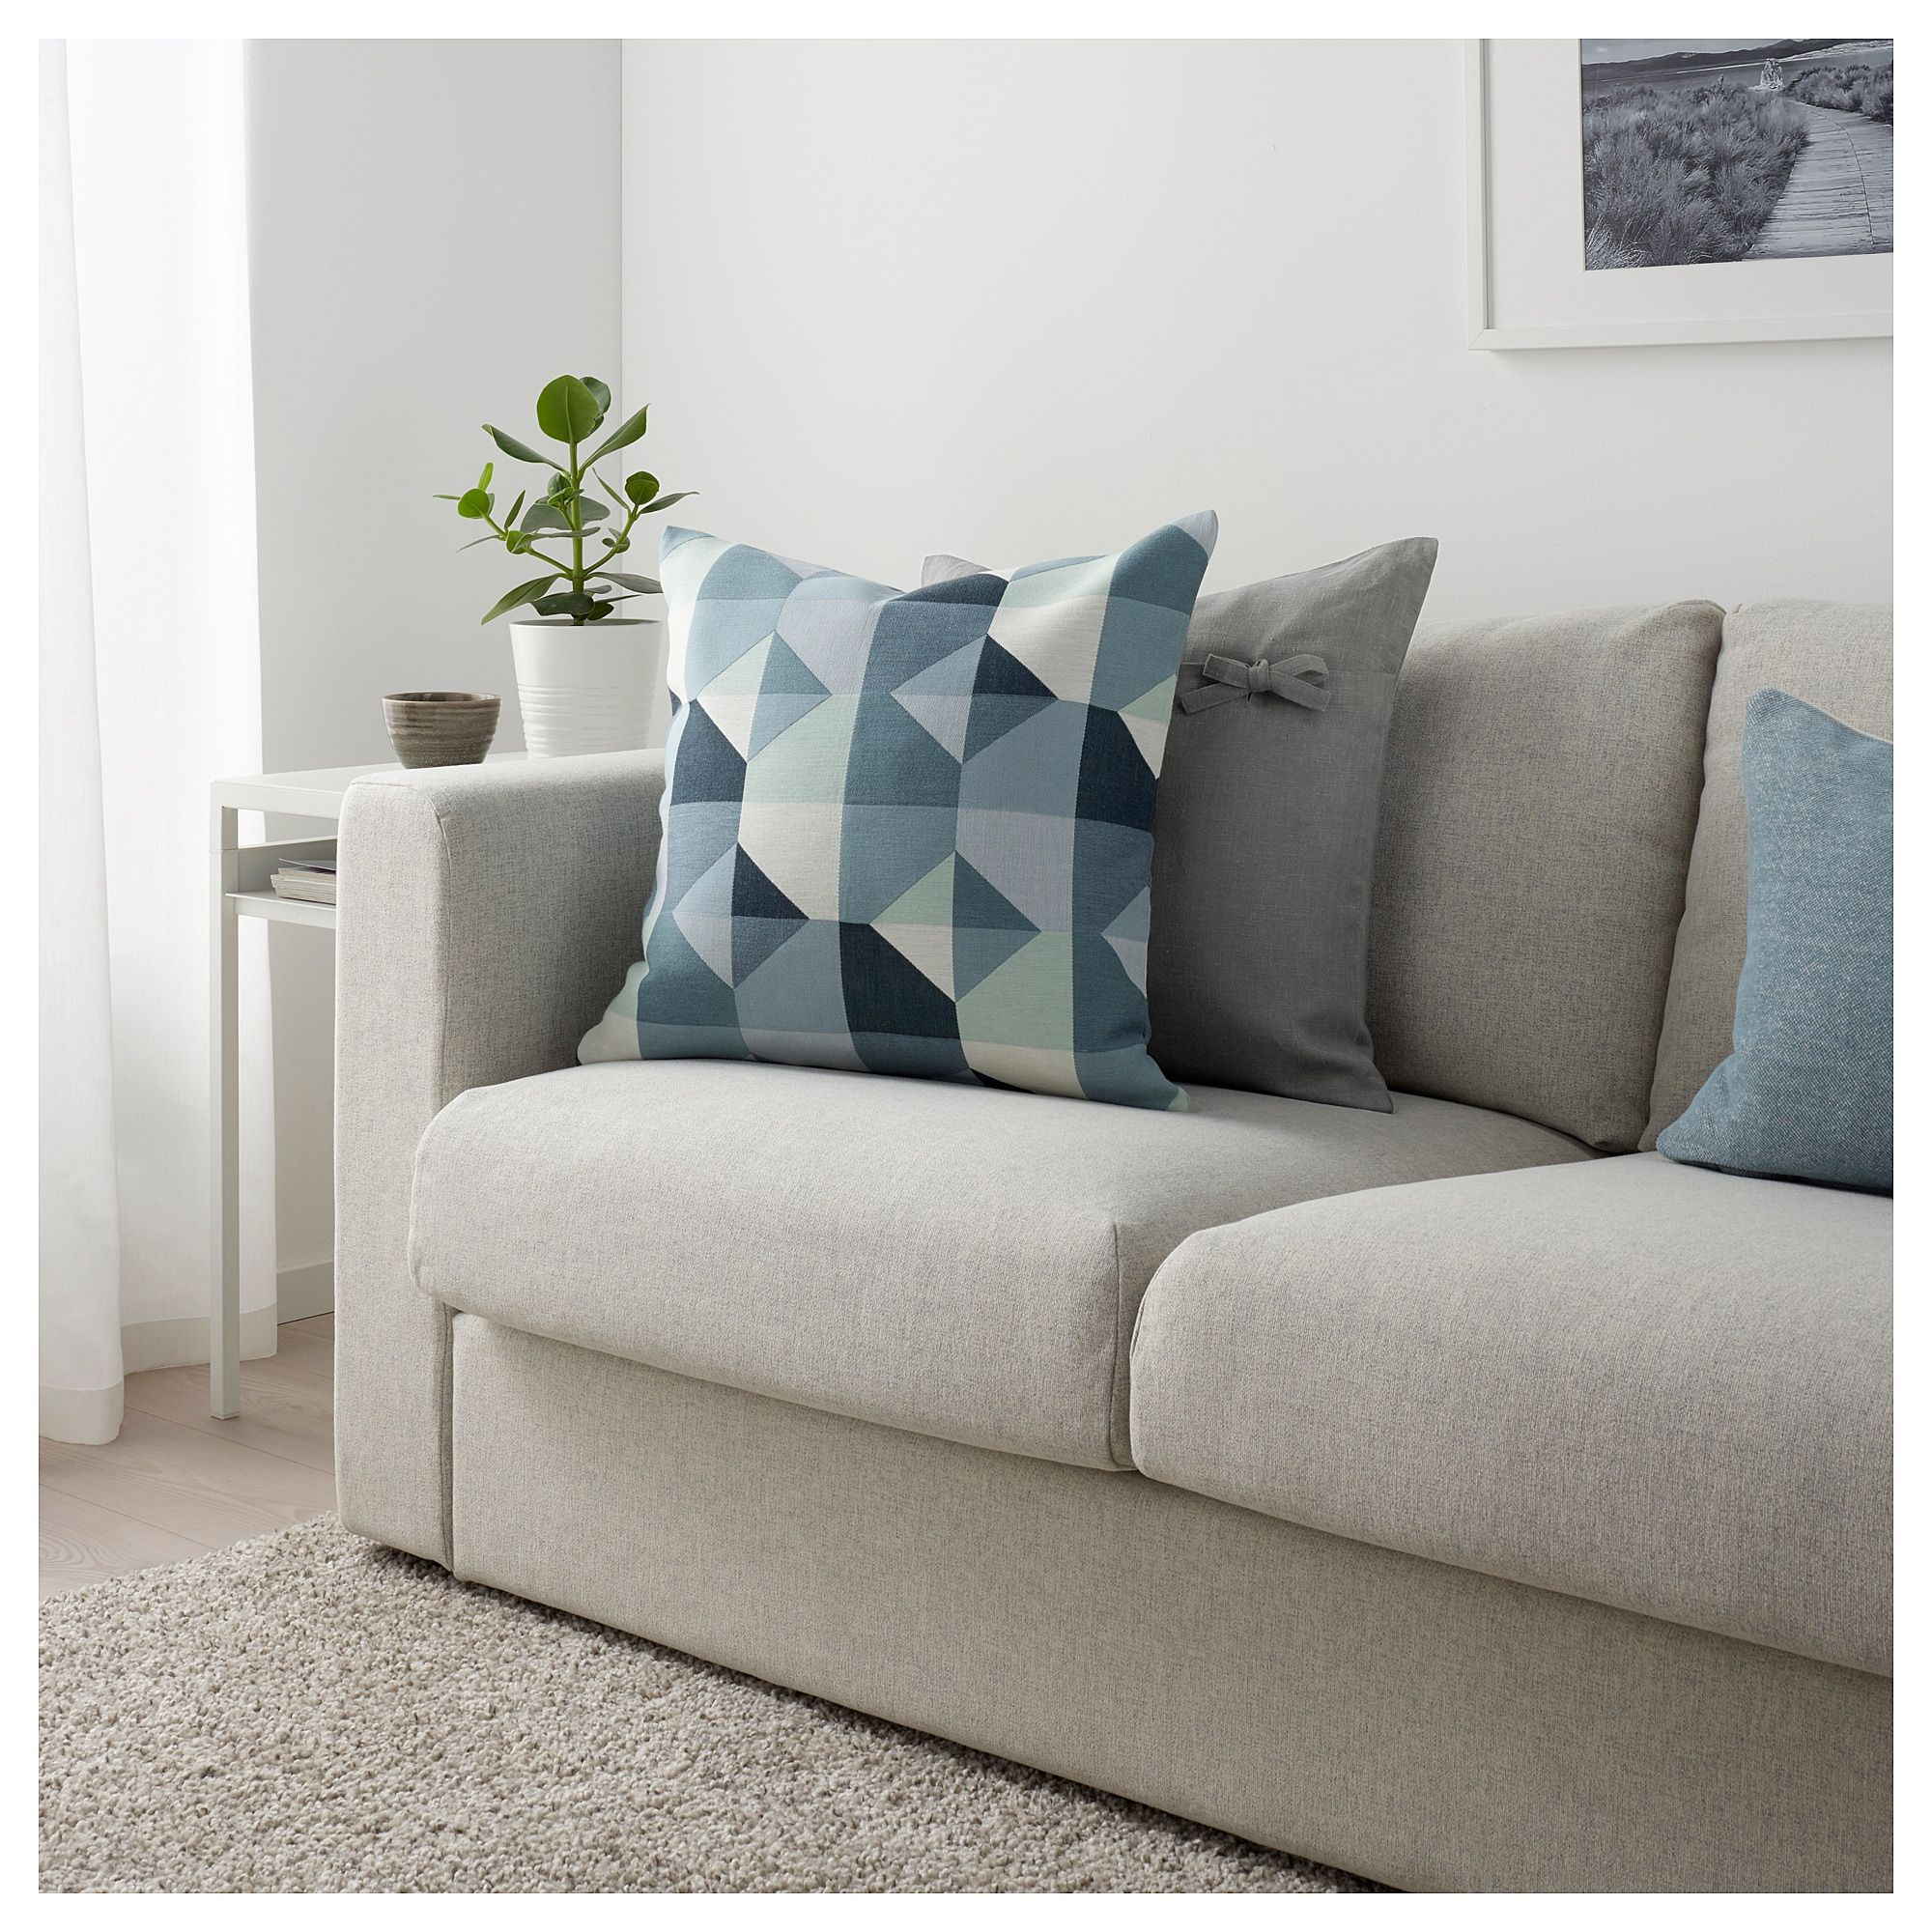 IKEA SVARTHÖ Cushion cover green/blue in 2019 Living